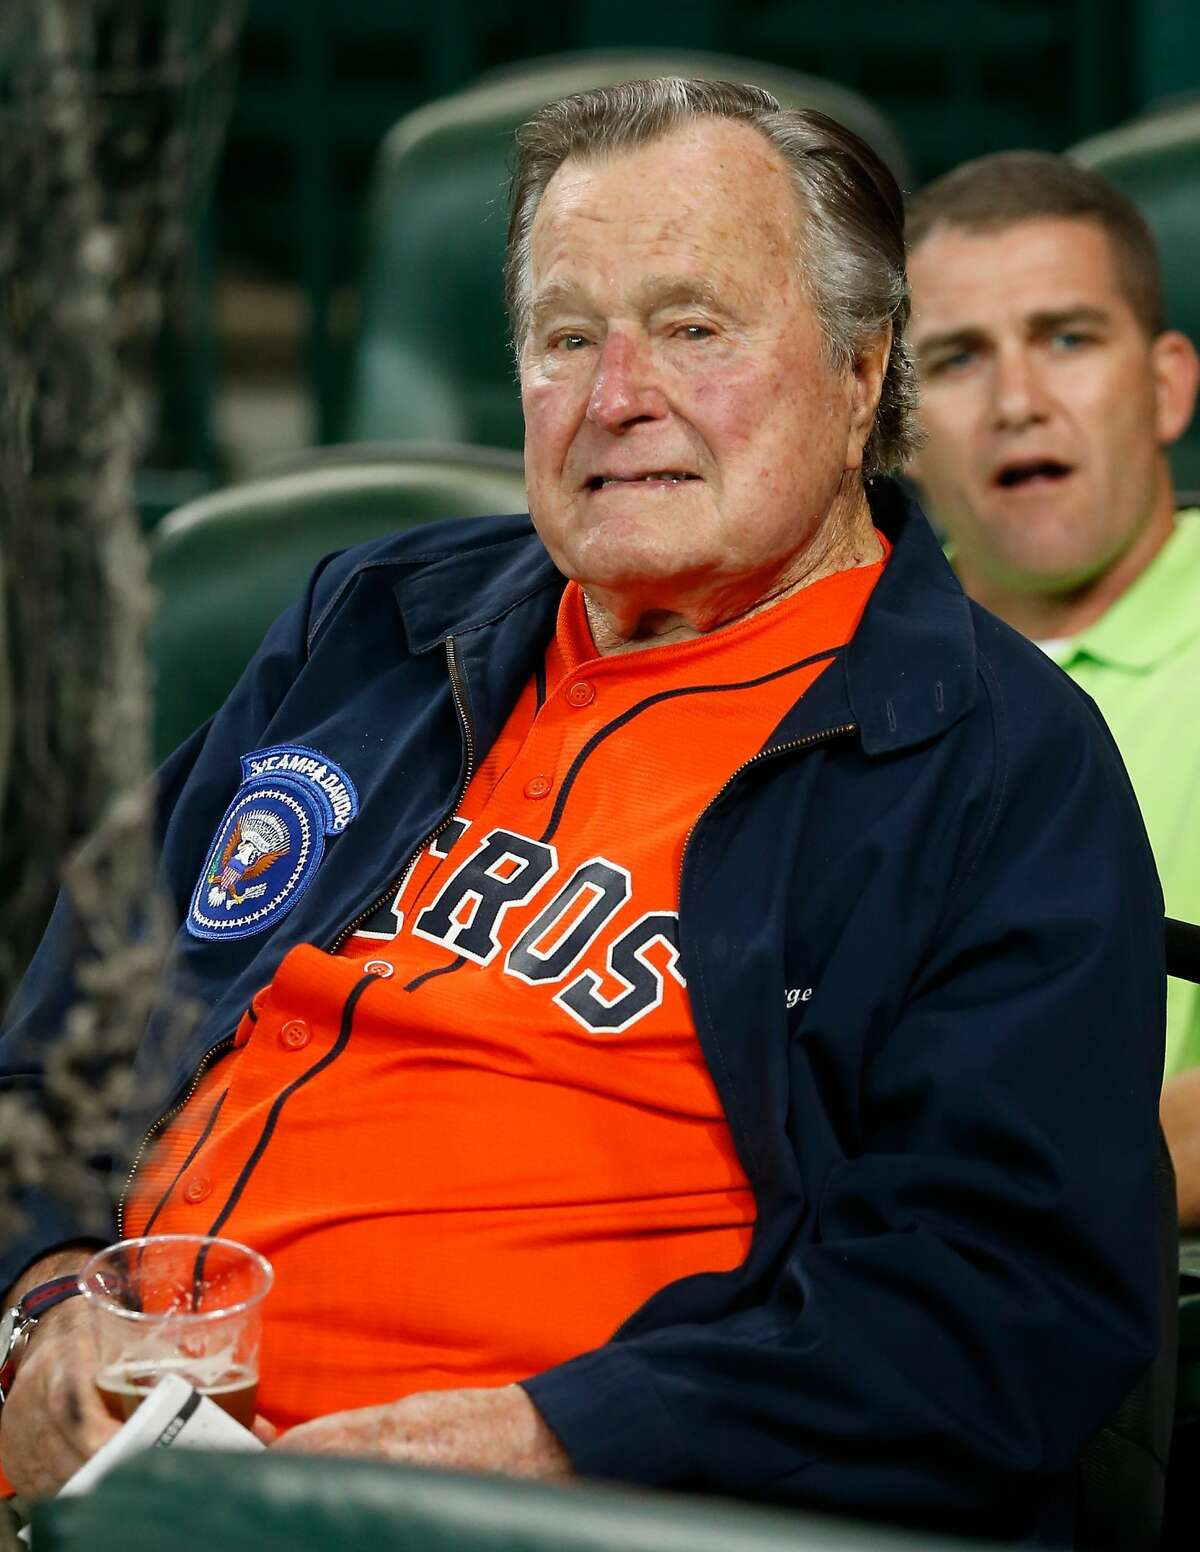 Former President George H.W. Bush throws out the first pitch to Collin McHugh #31 at Minute Maid Park on April 12, 2016 in Houston, Texas.